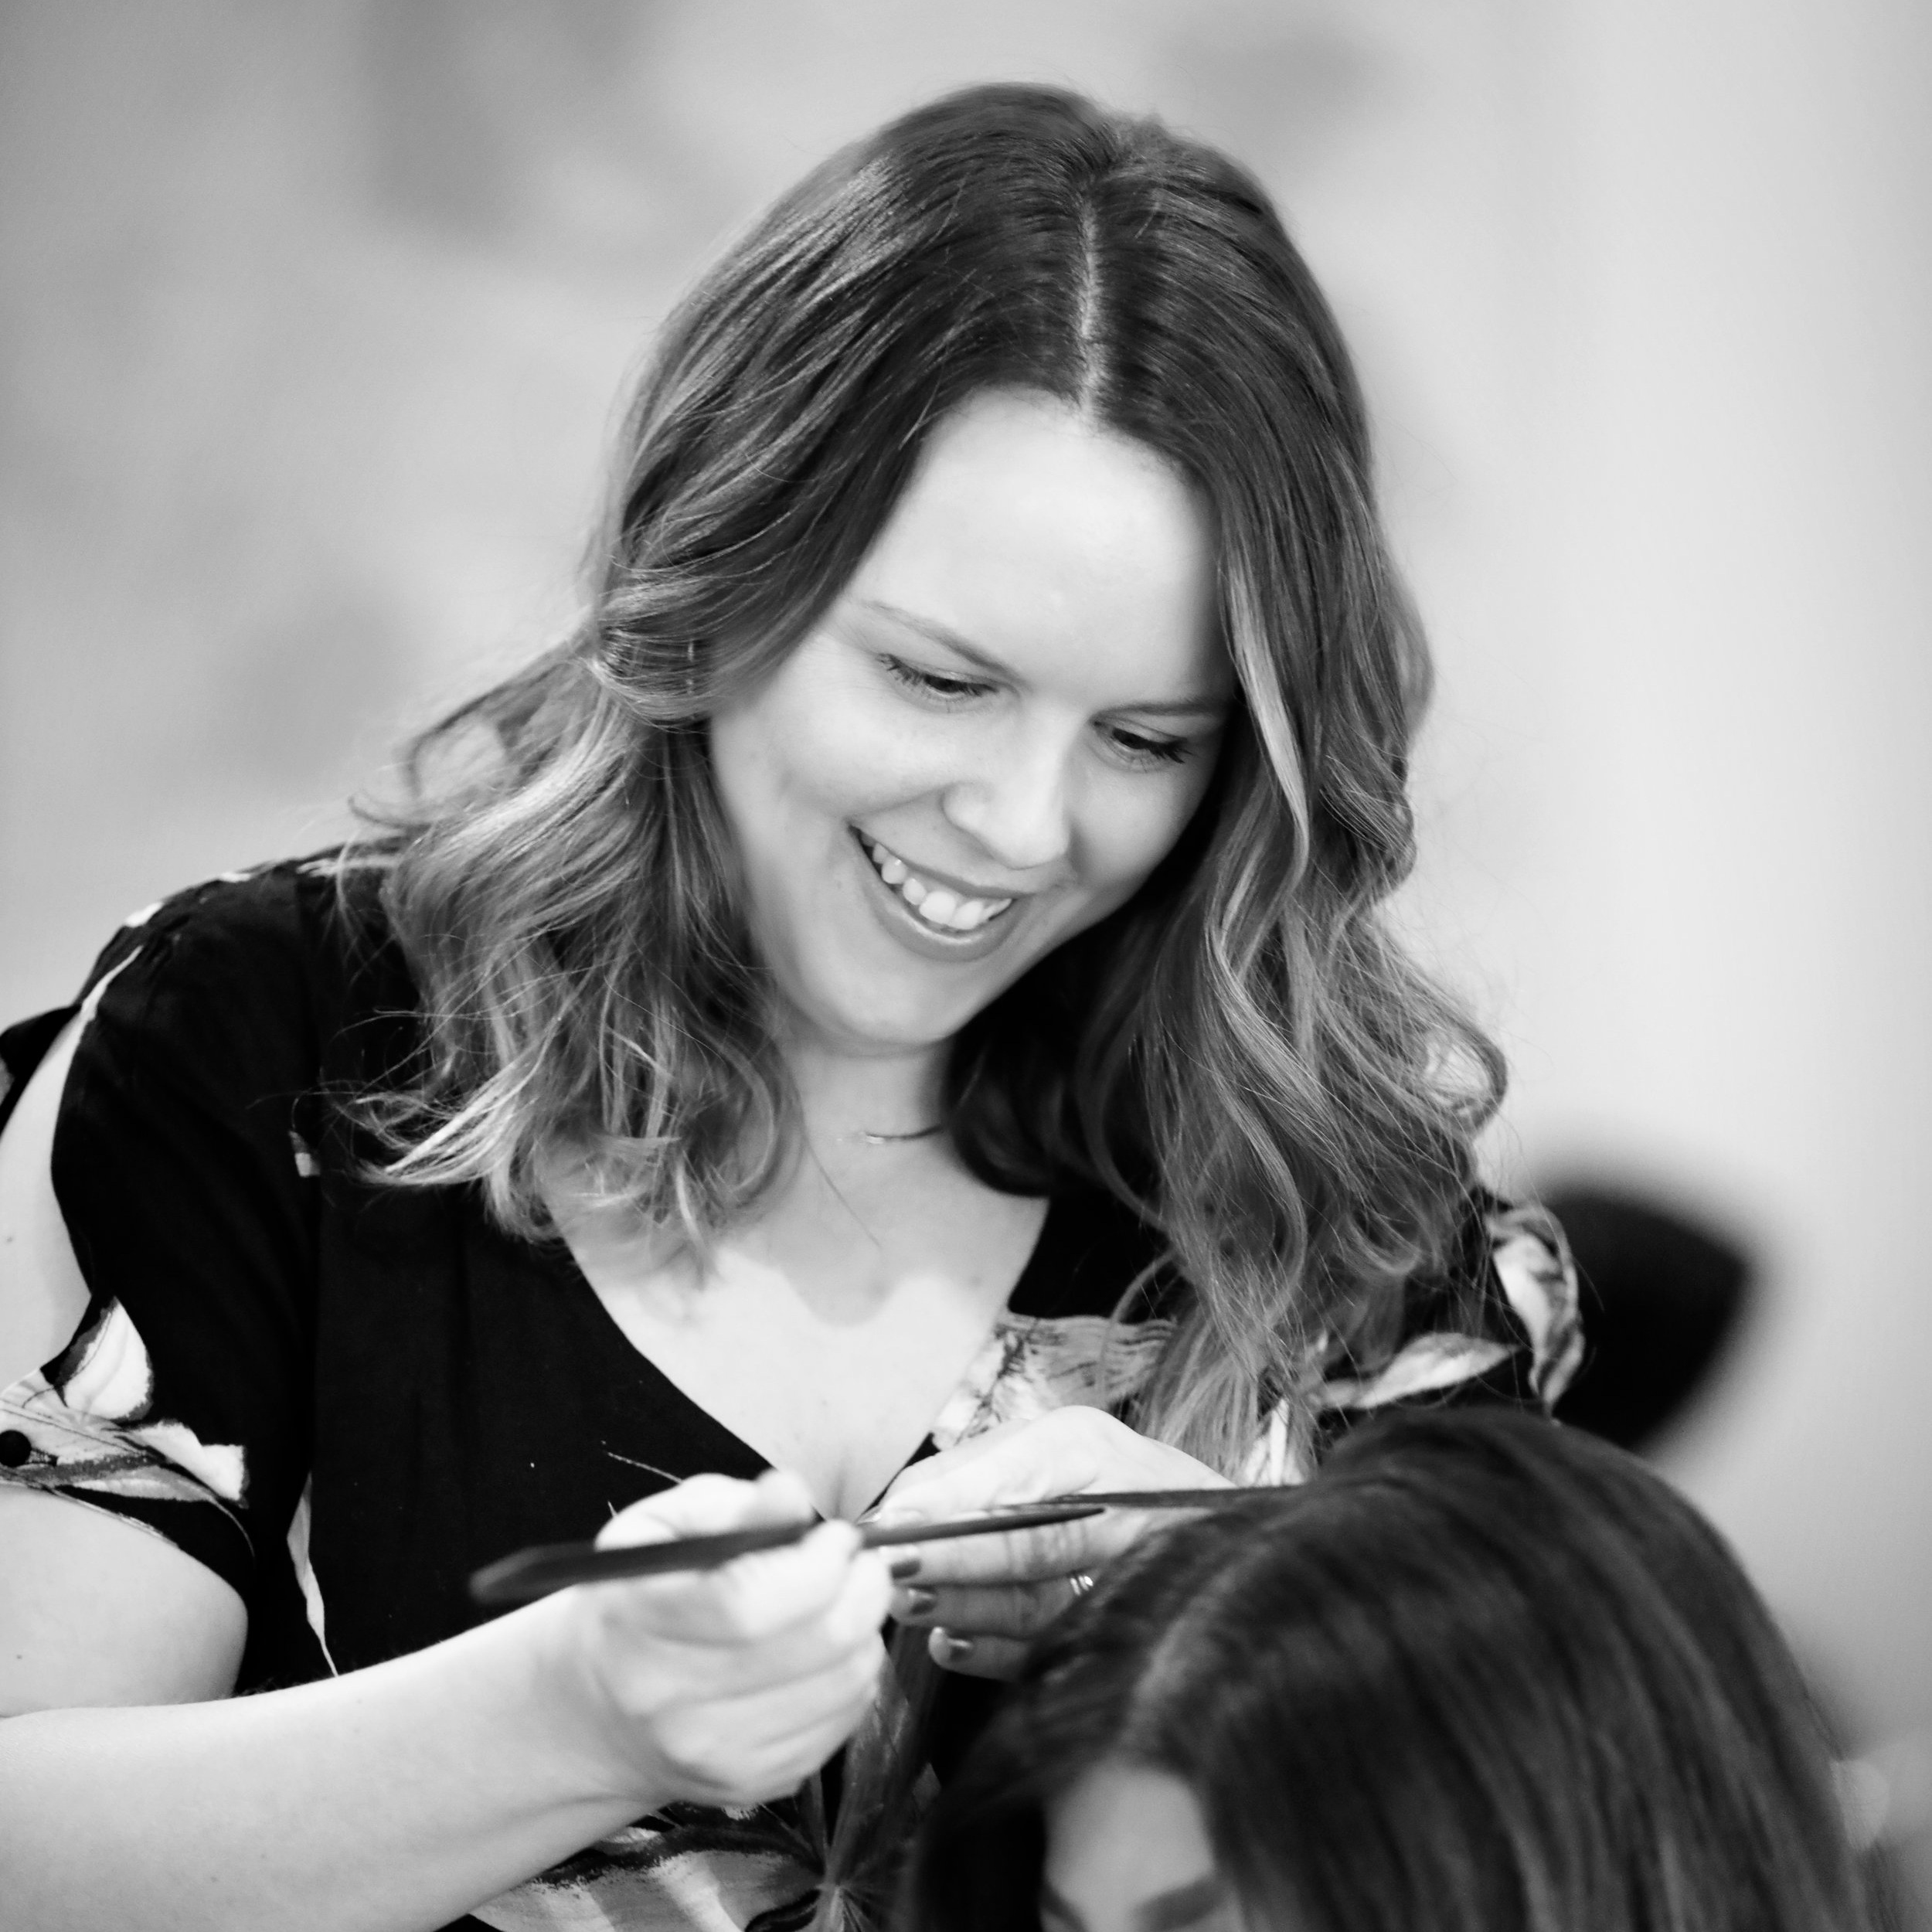 Amber Ohara - Amber is a Board Certified colorist and master stylist with over 18 years experience behind the chair. She has worked in all facets of the industry and was the brain child behind The Business of Balayage before selling her shares and moving on to open Gold & Braid Salon.Her eye for color and passion for evolvement has kept her in the top of her industry. Her passion lies in training other stylists to experience the beauty in the industry.